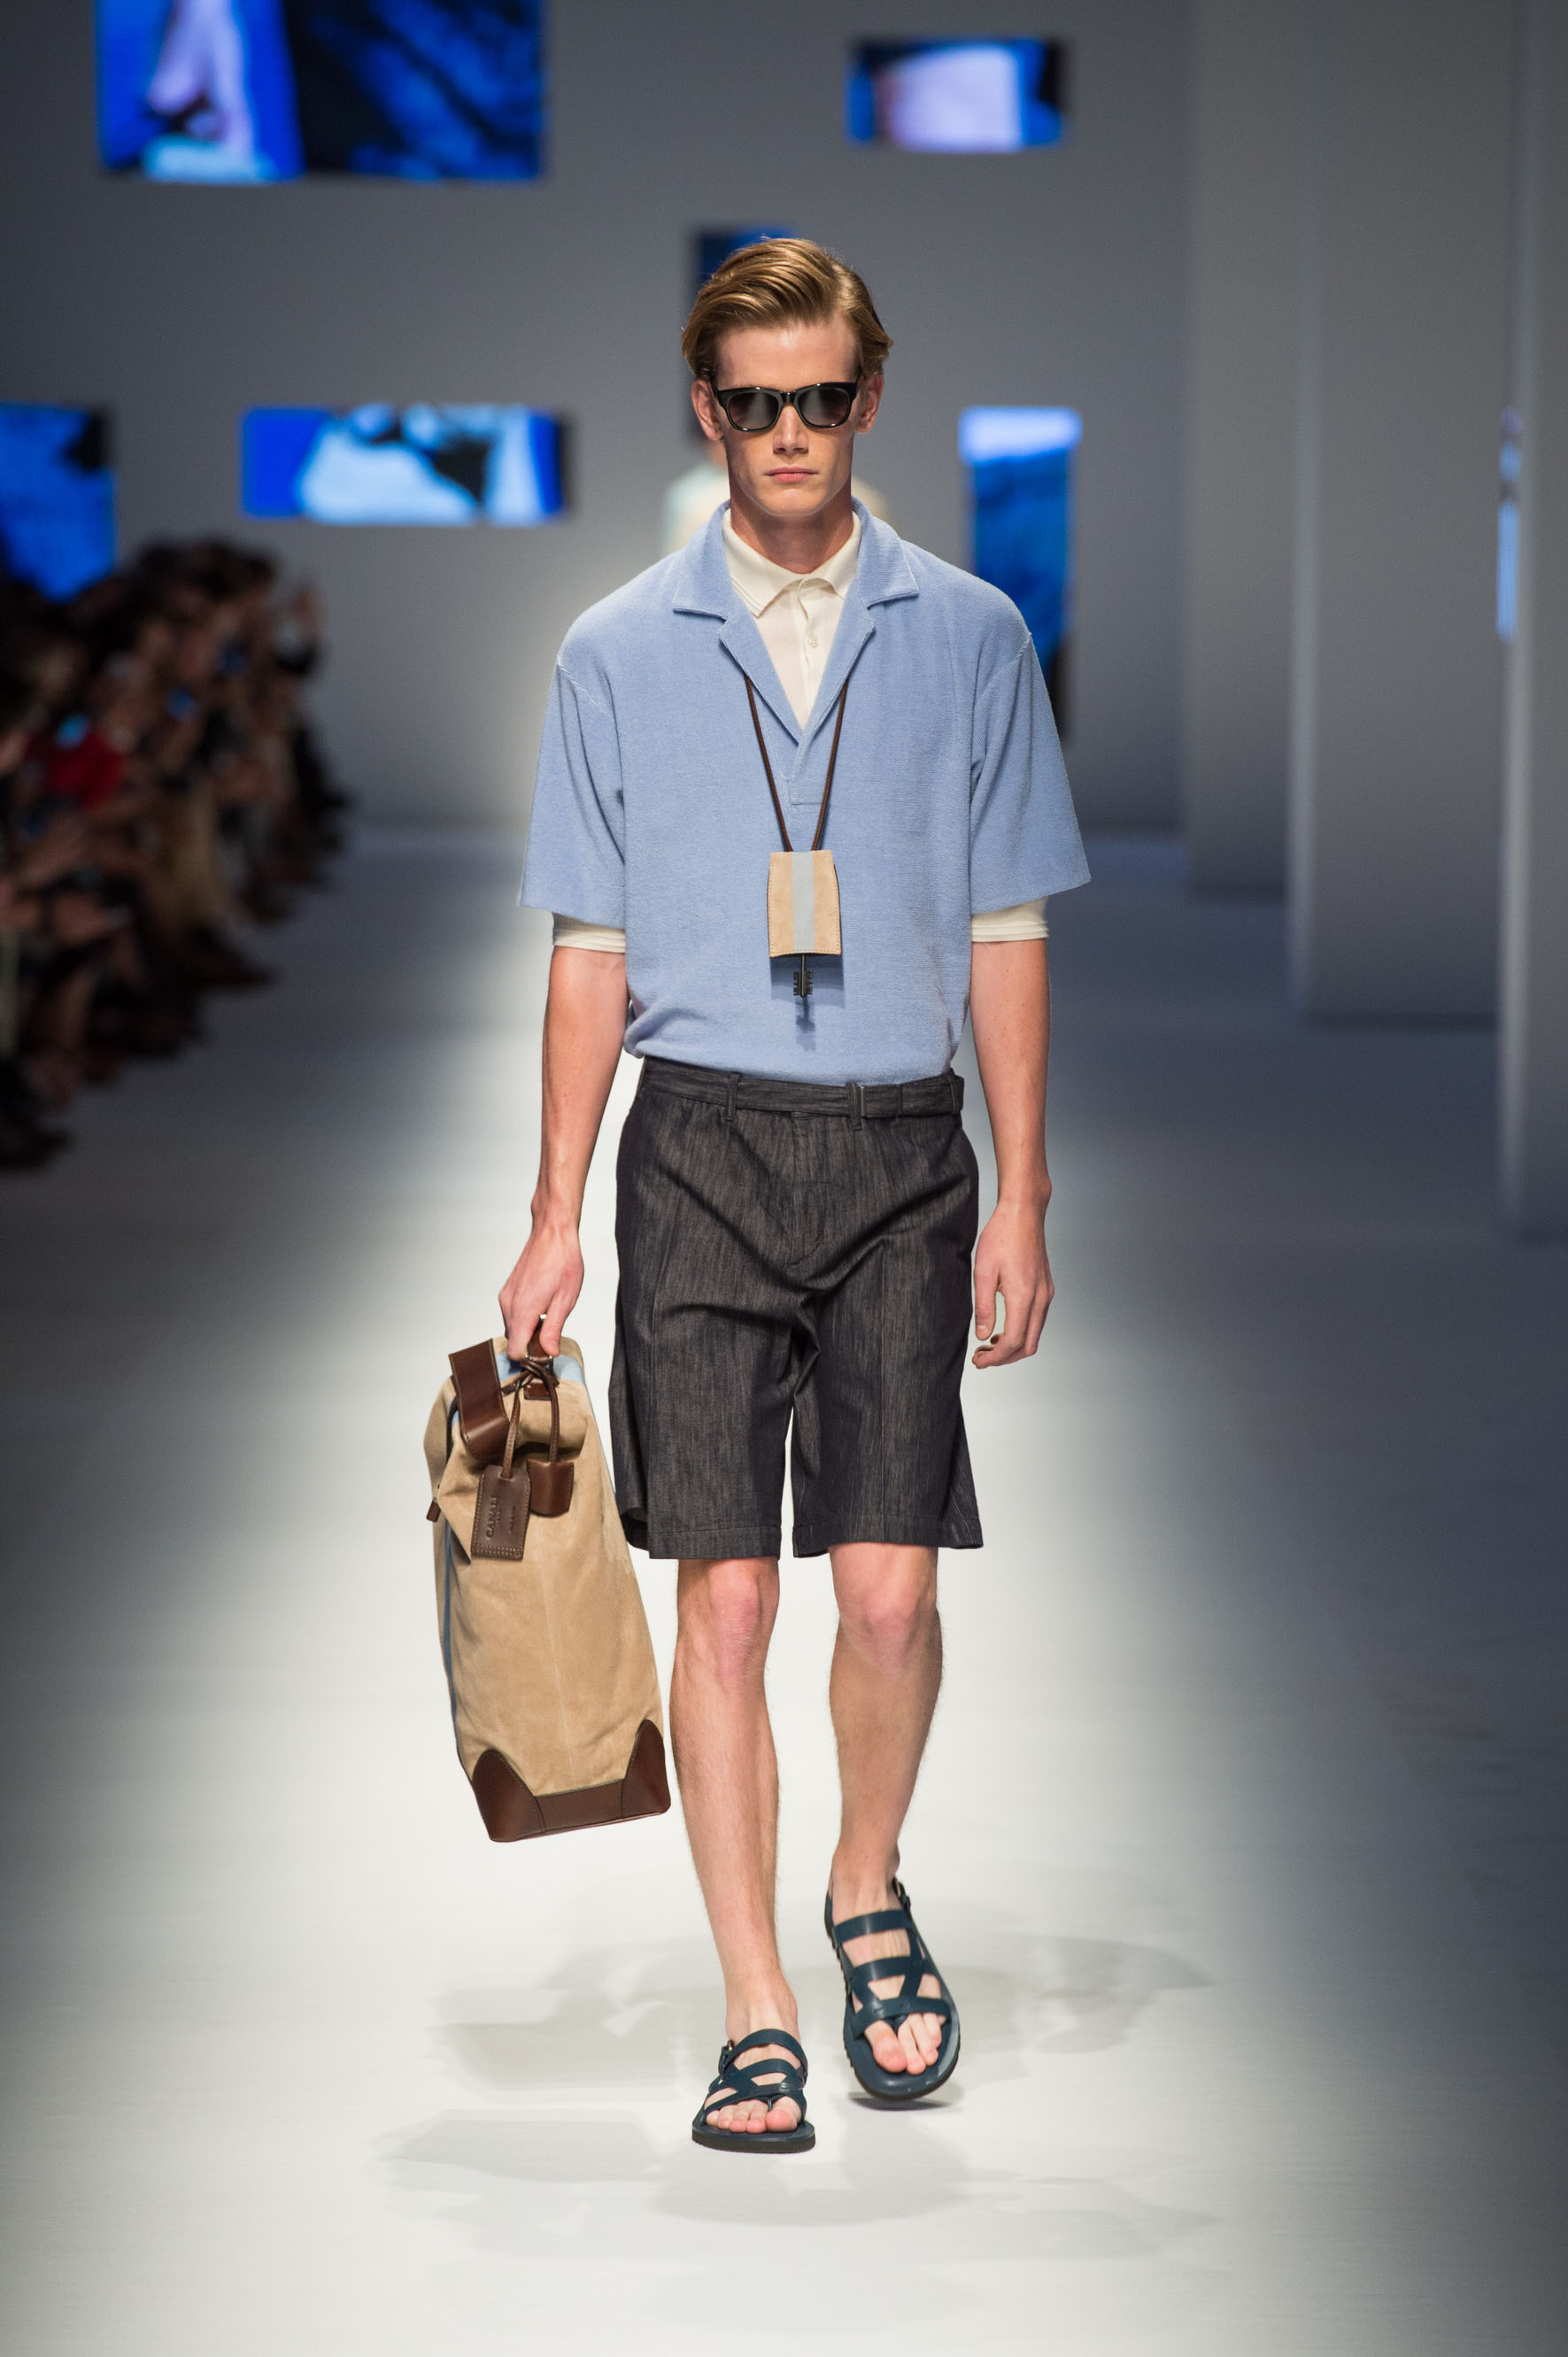 Polo in cotton with terry effect, cotton-silk shorts, calfskin sandals, key holder, suede holdall with contrast stripe